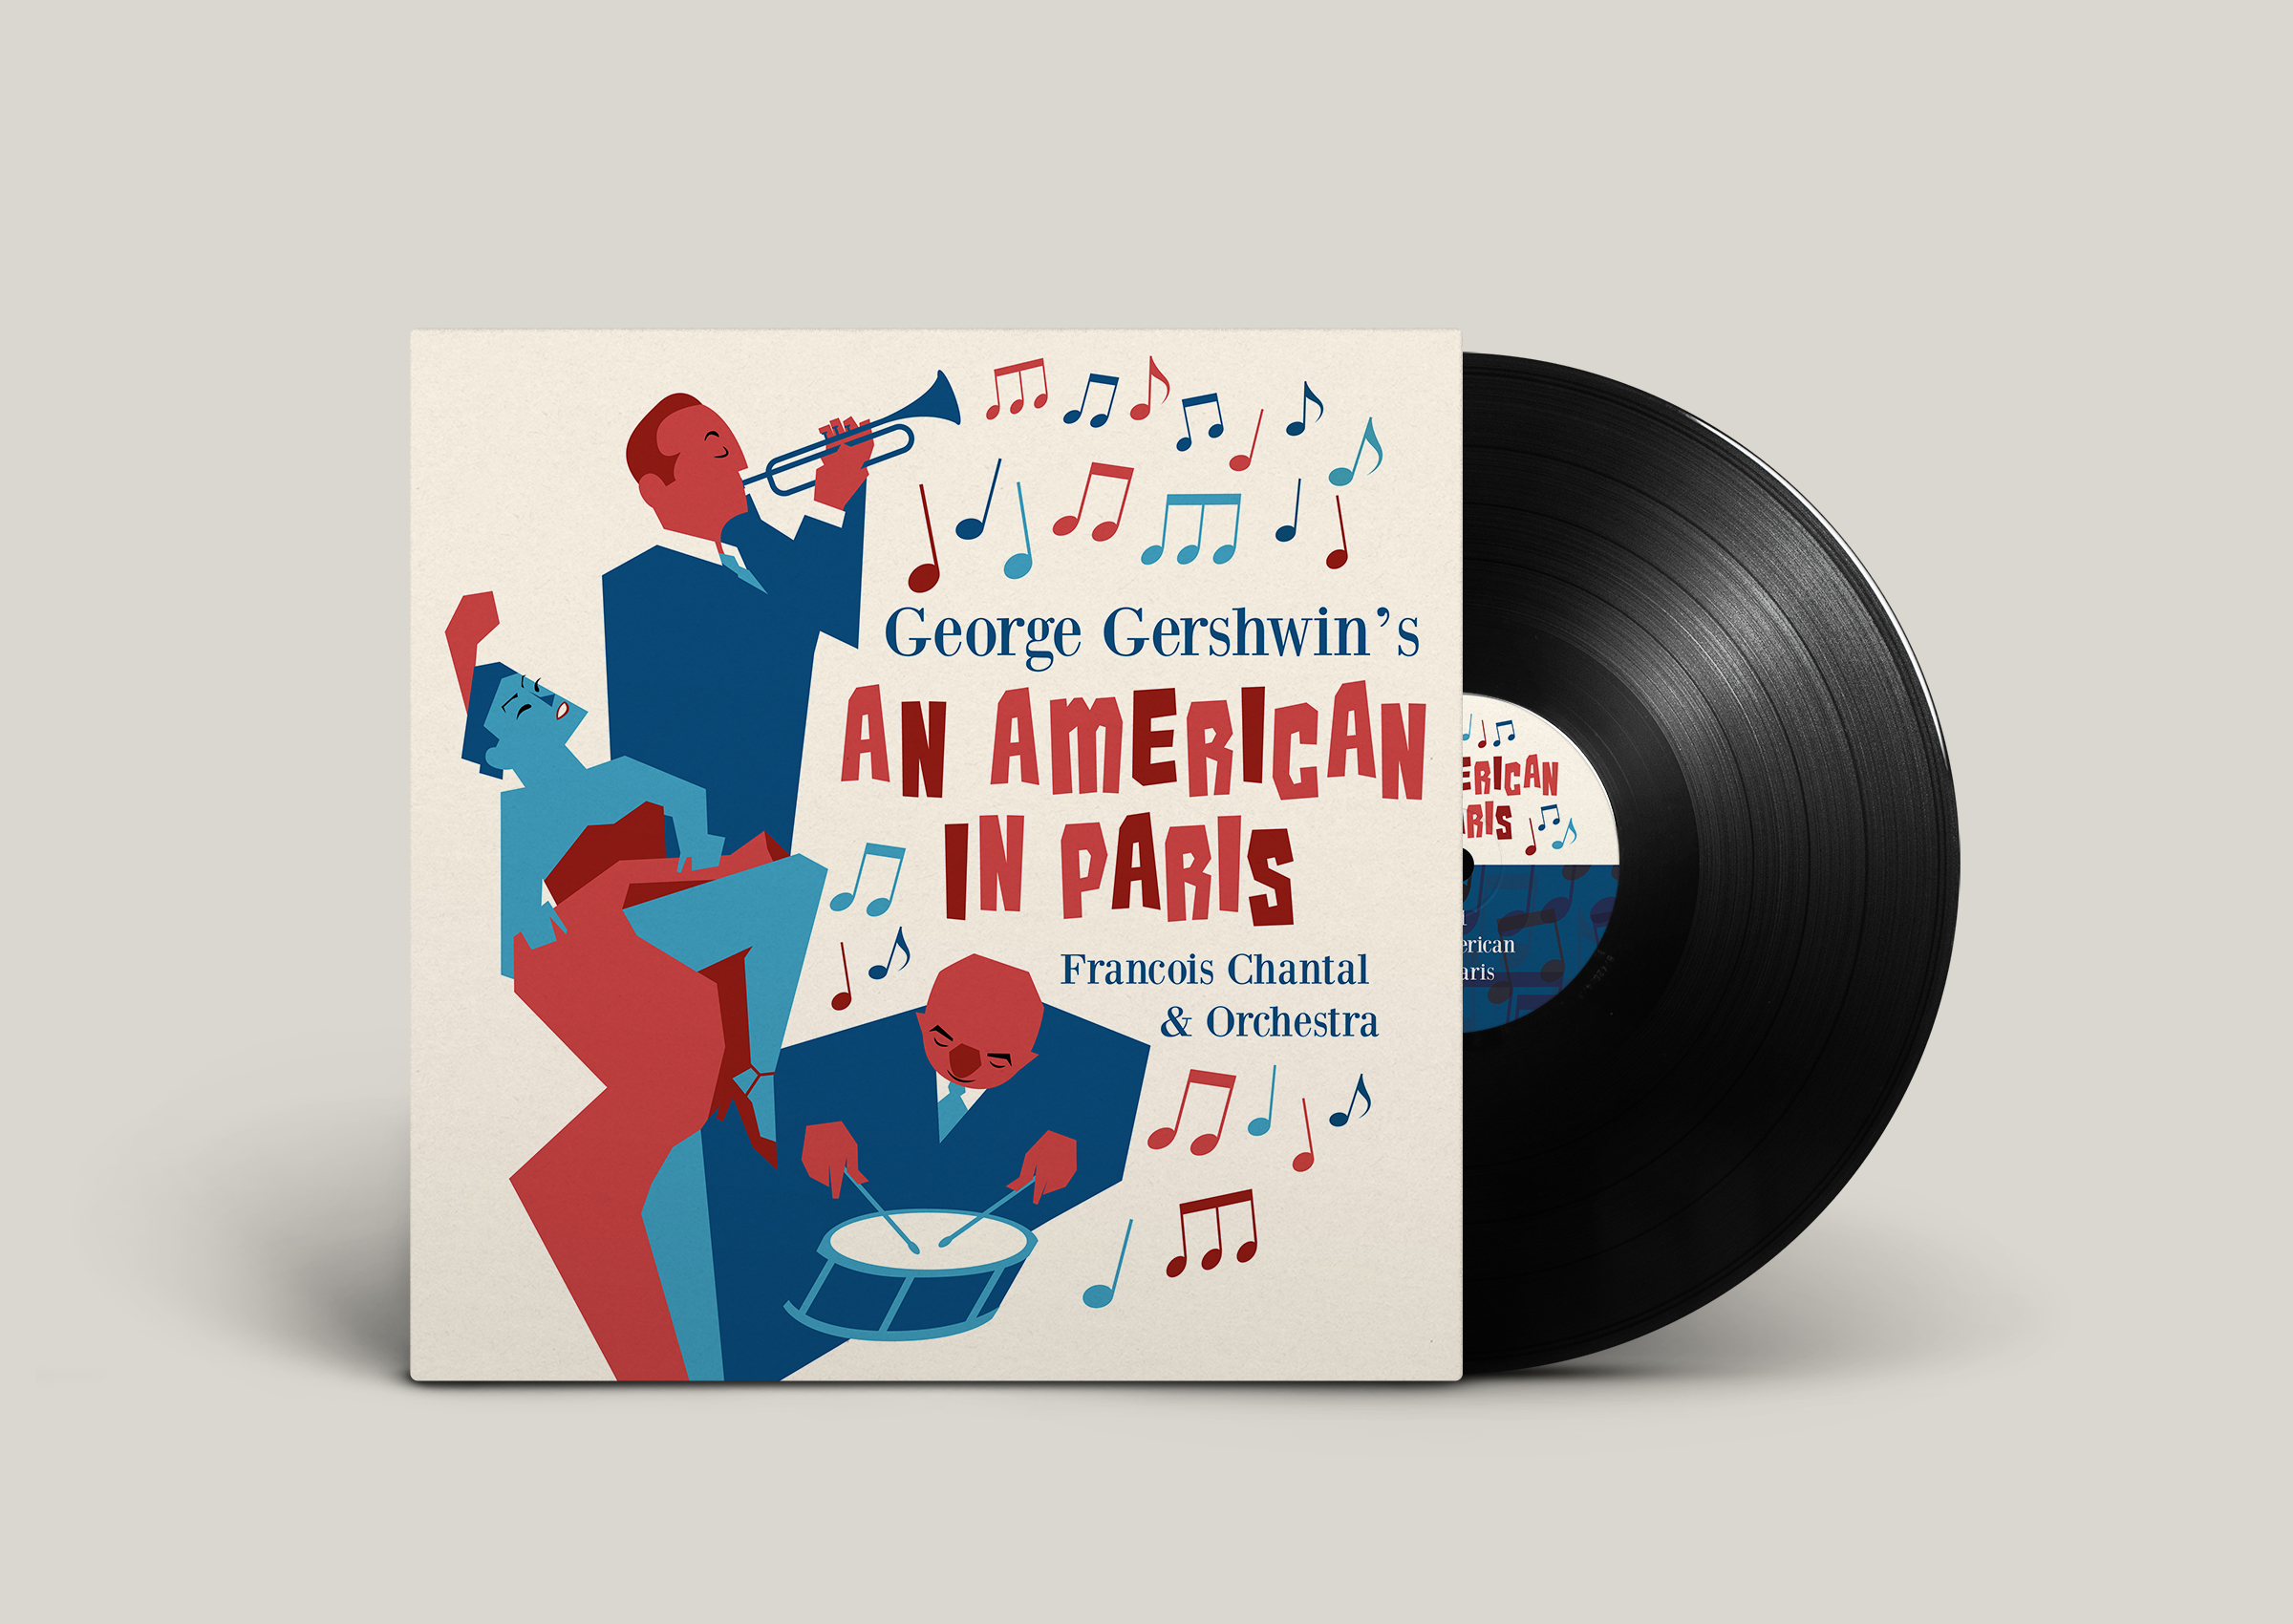 An American In Paris Vinyl Sleeve Design